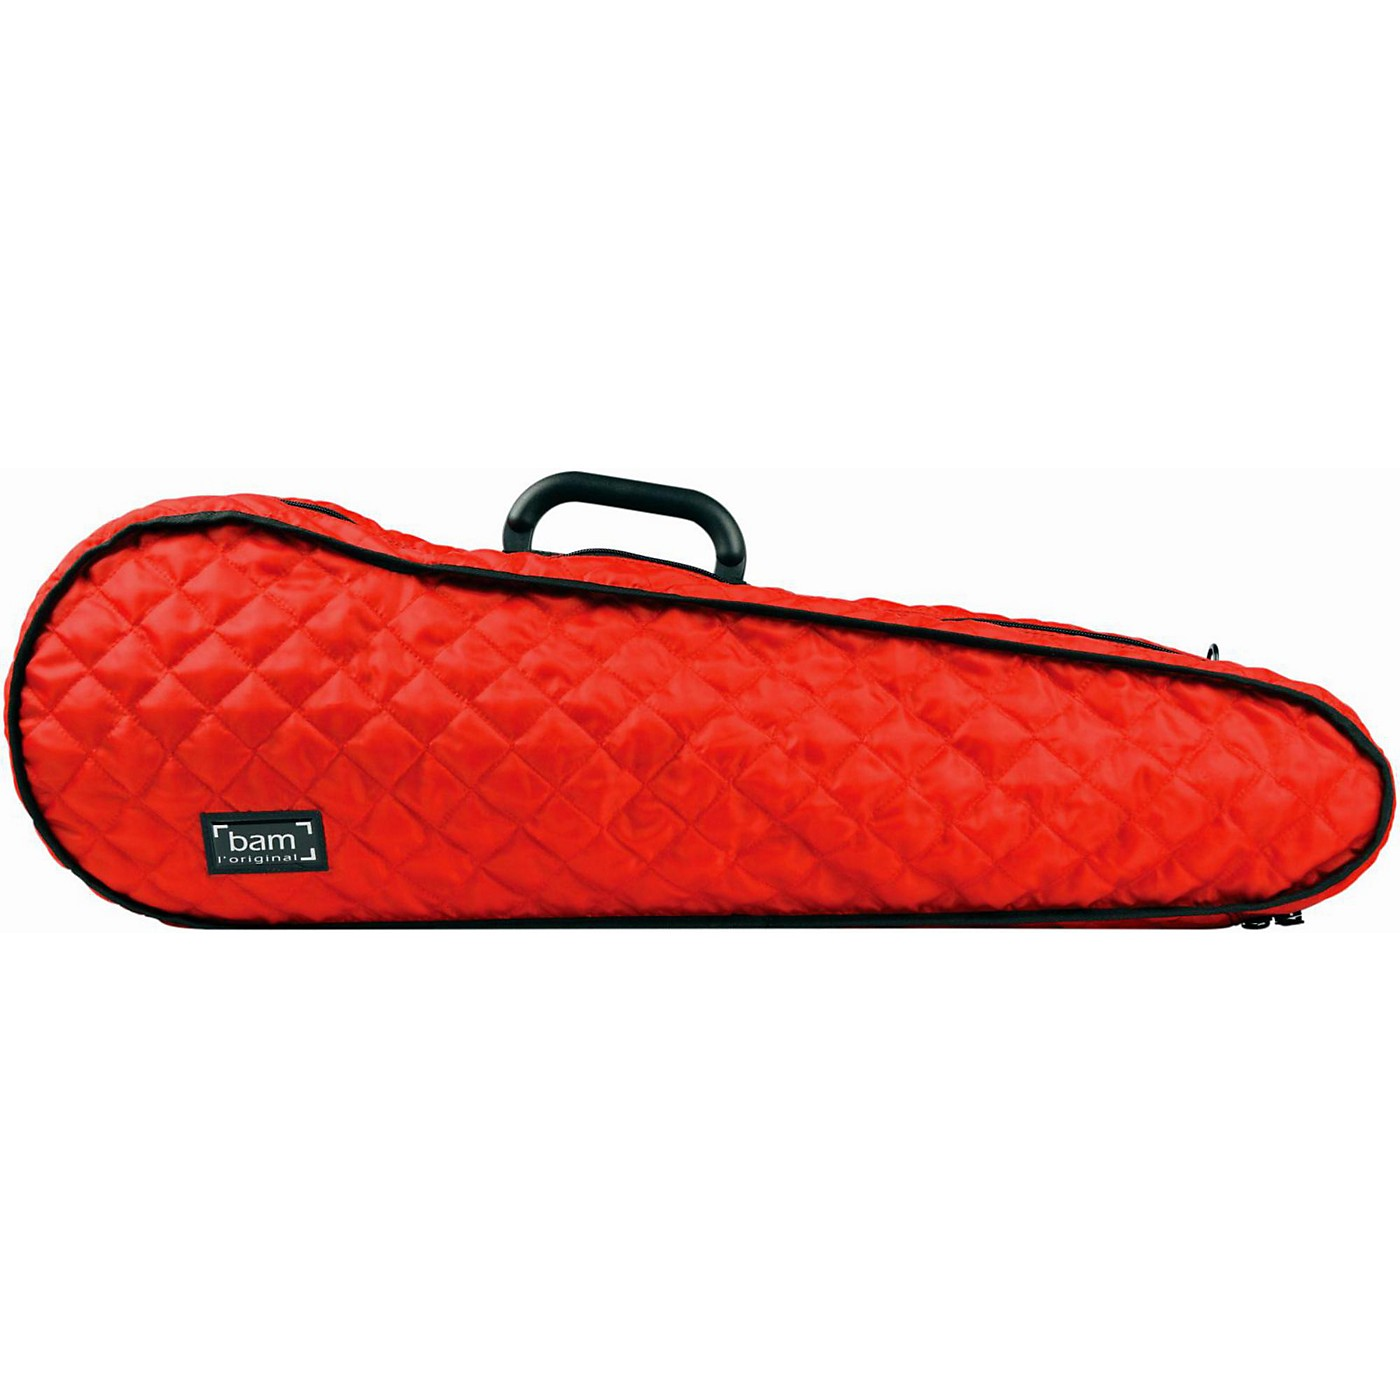 Bam Hoodies Cover for Hightech Violin Case thumbnail